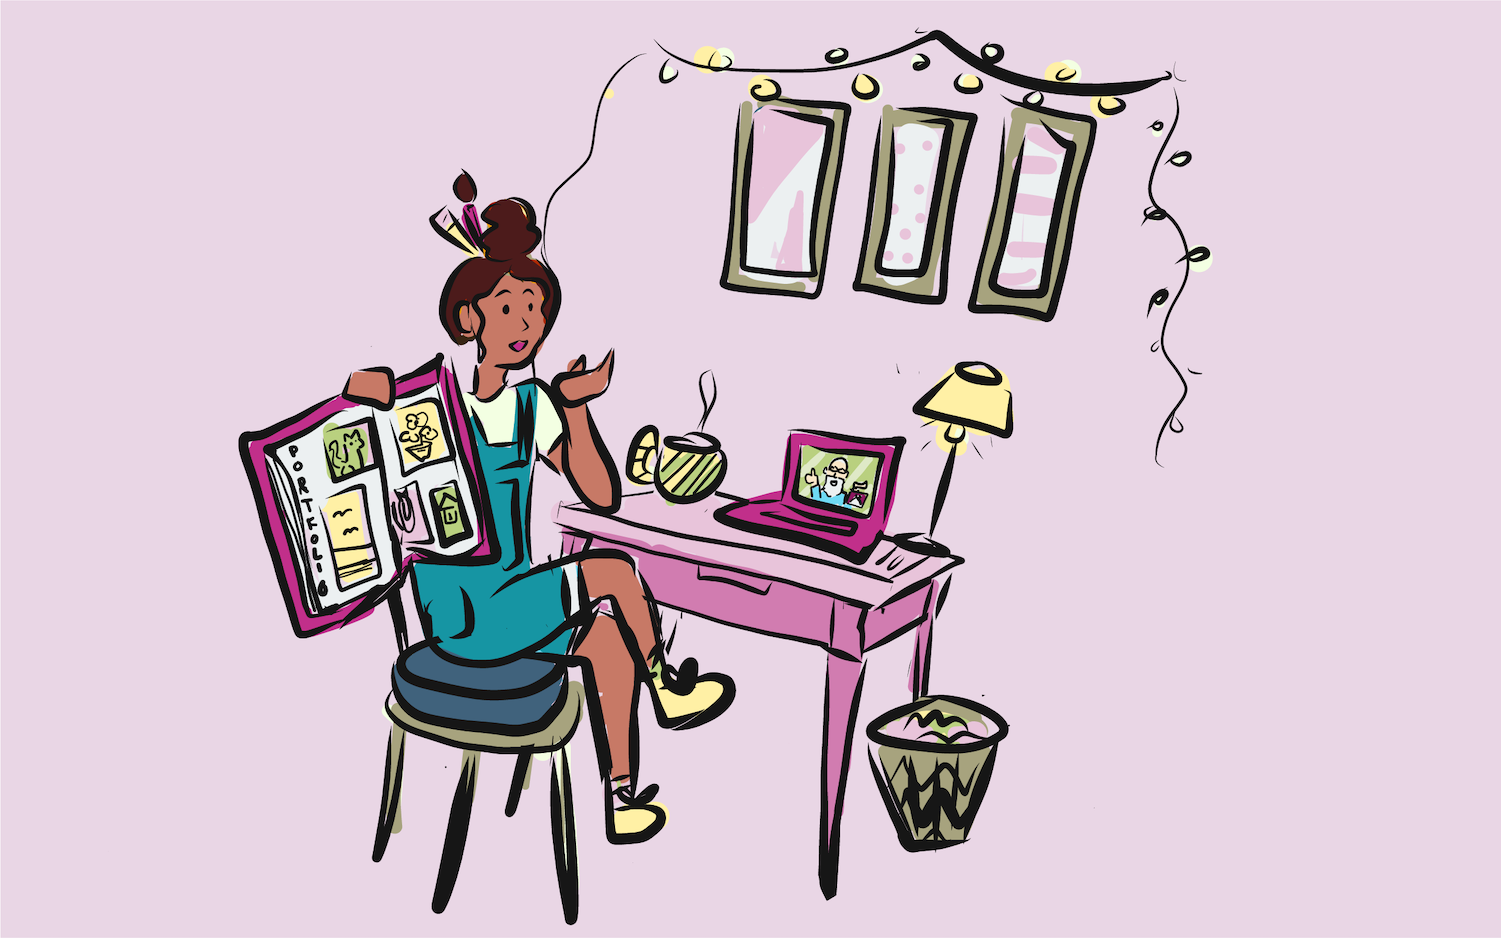 Young girl sitting at her desk participating in a research session on her laptop. Illustration.